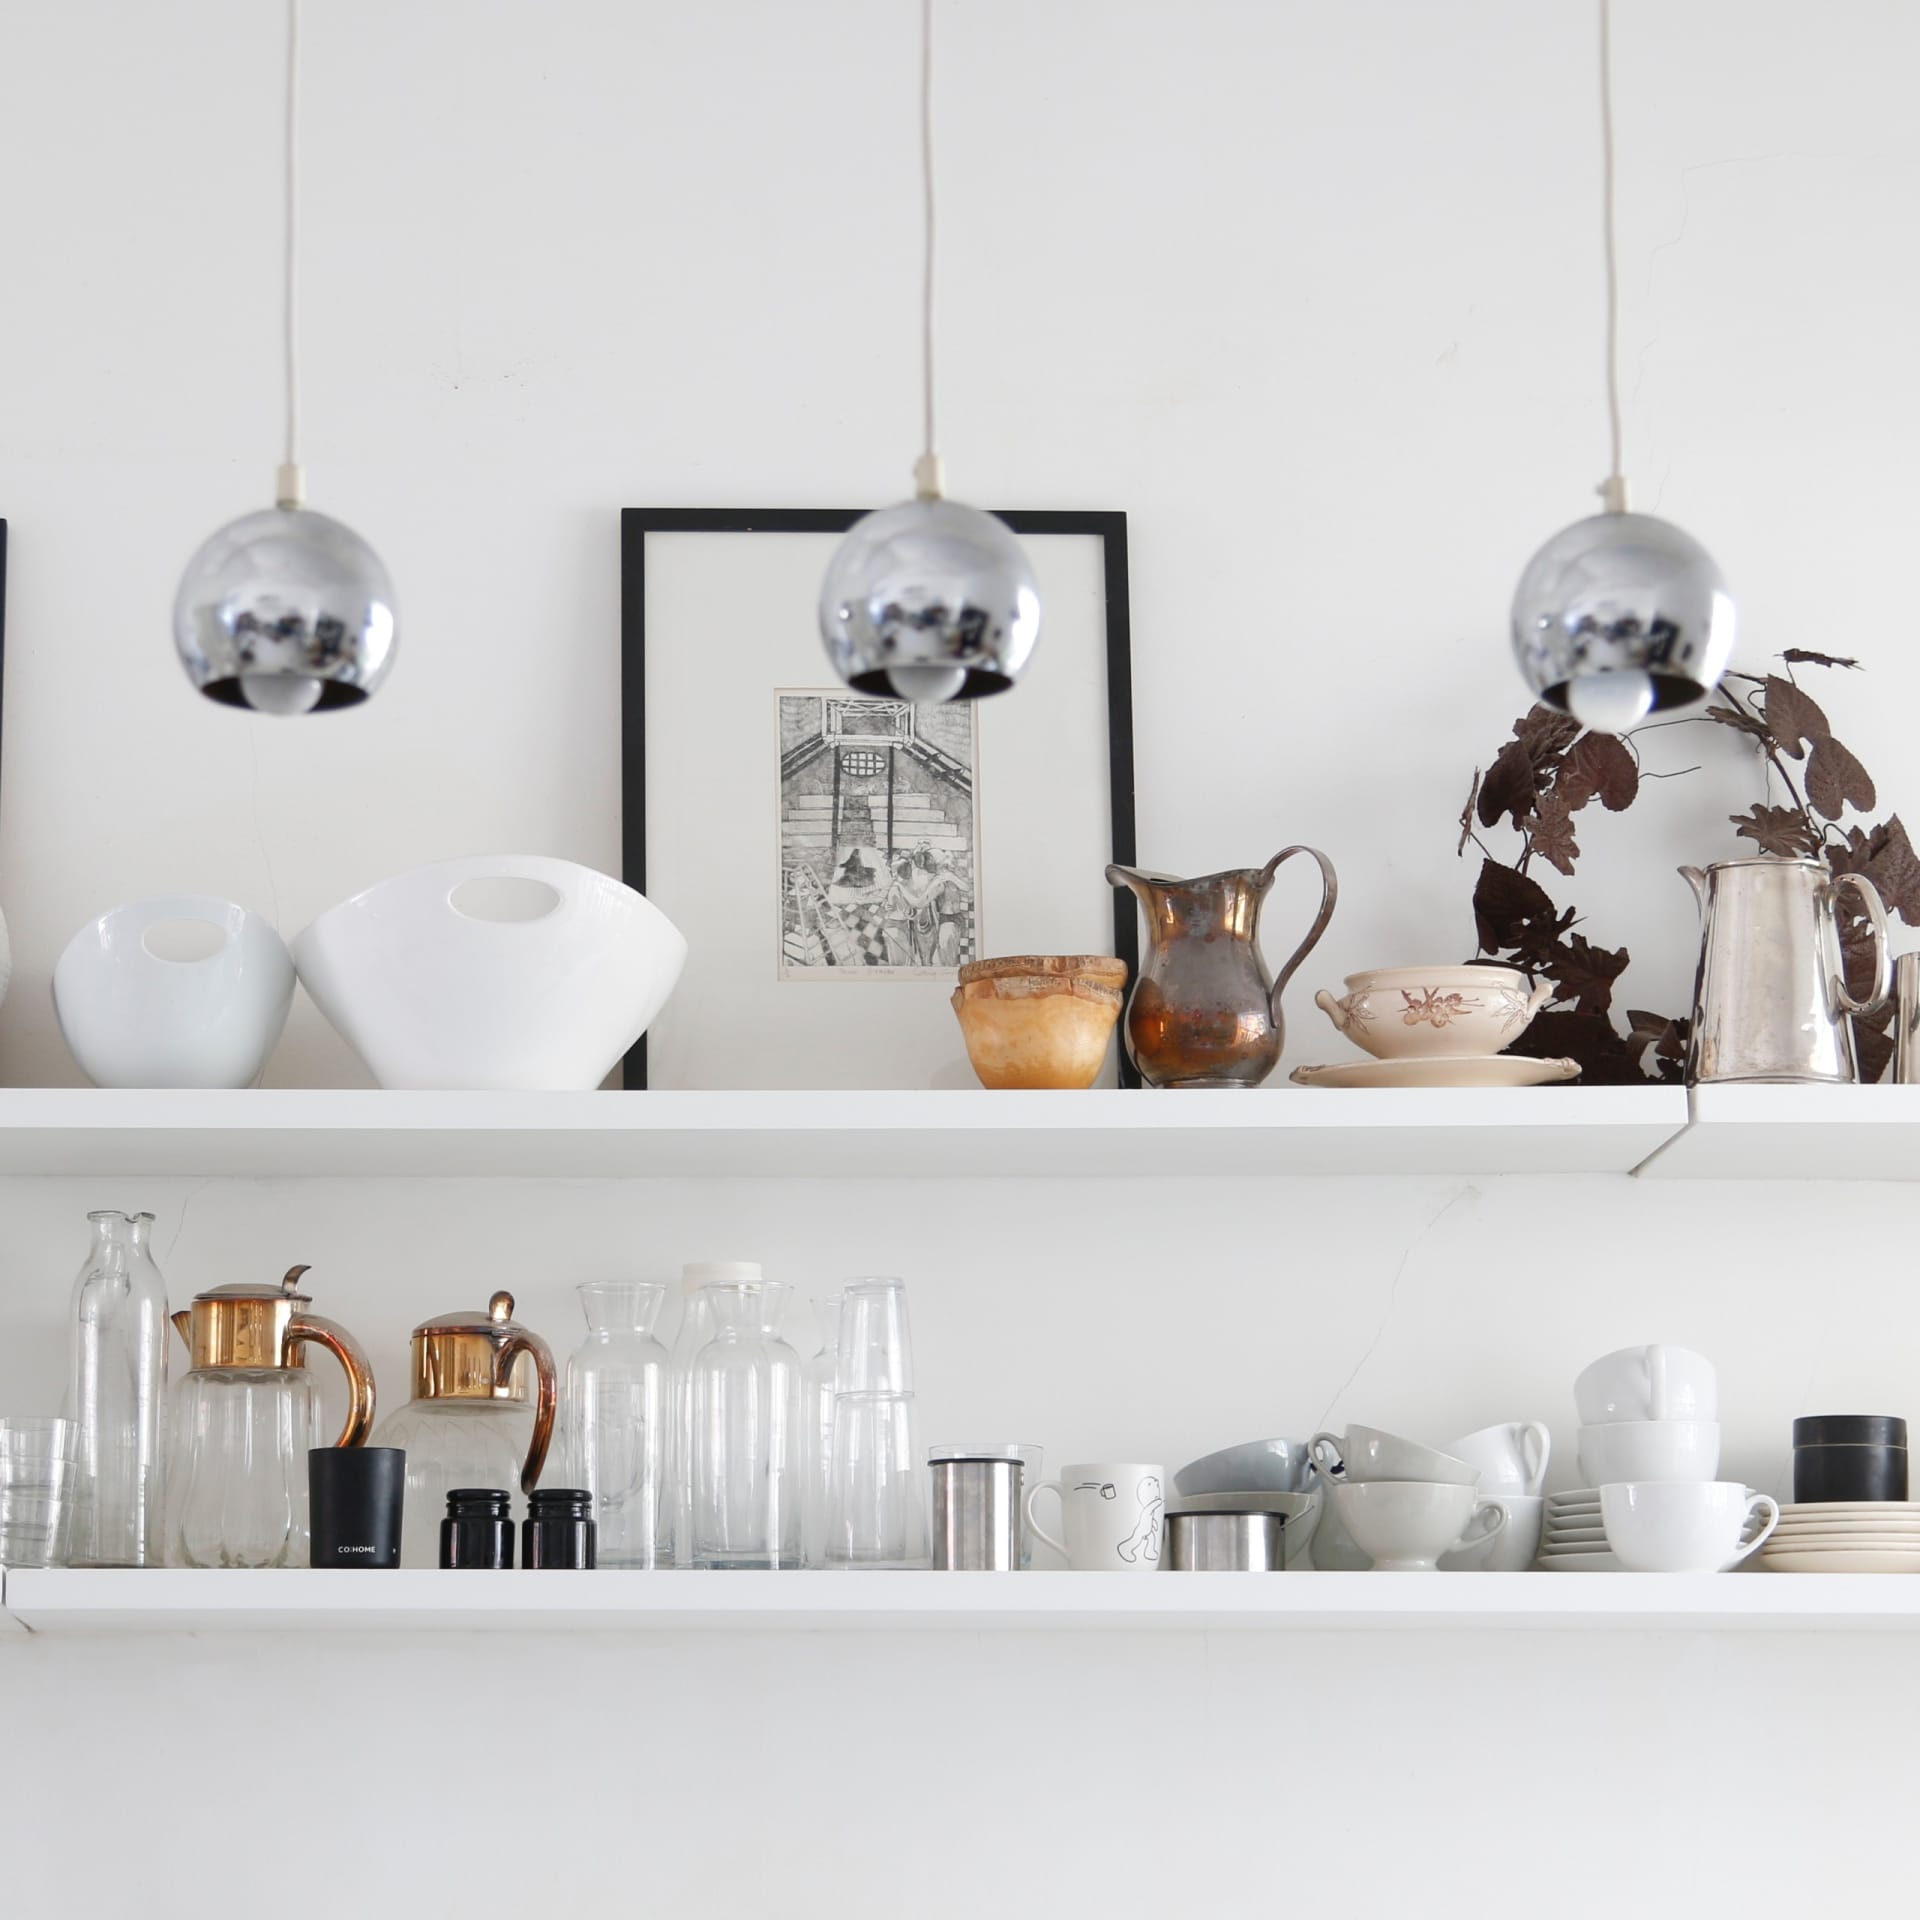 The open kitchen shelves are practical and are used to store glassware, crockery and some items that the owner has collected on her travels.